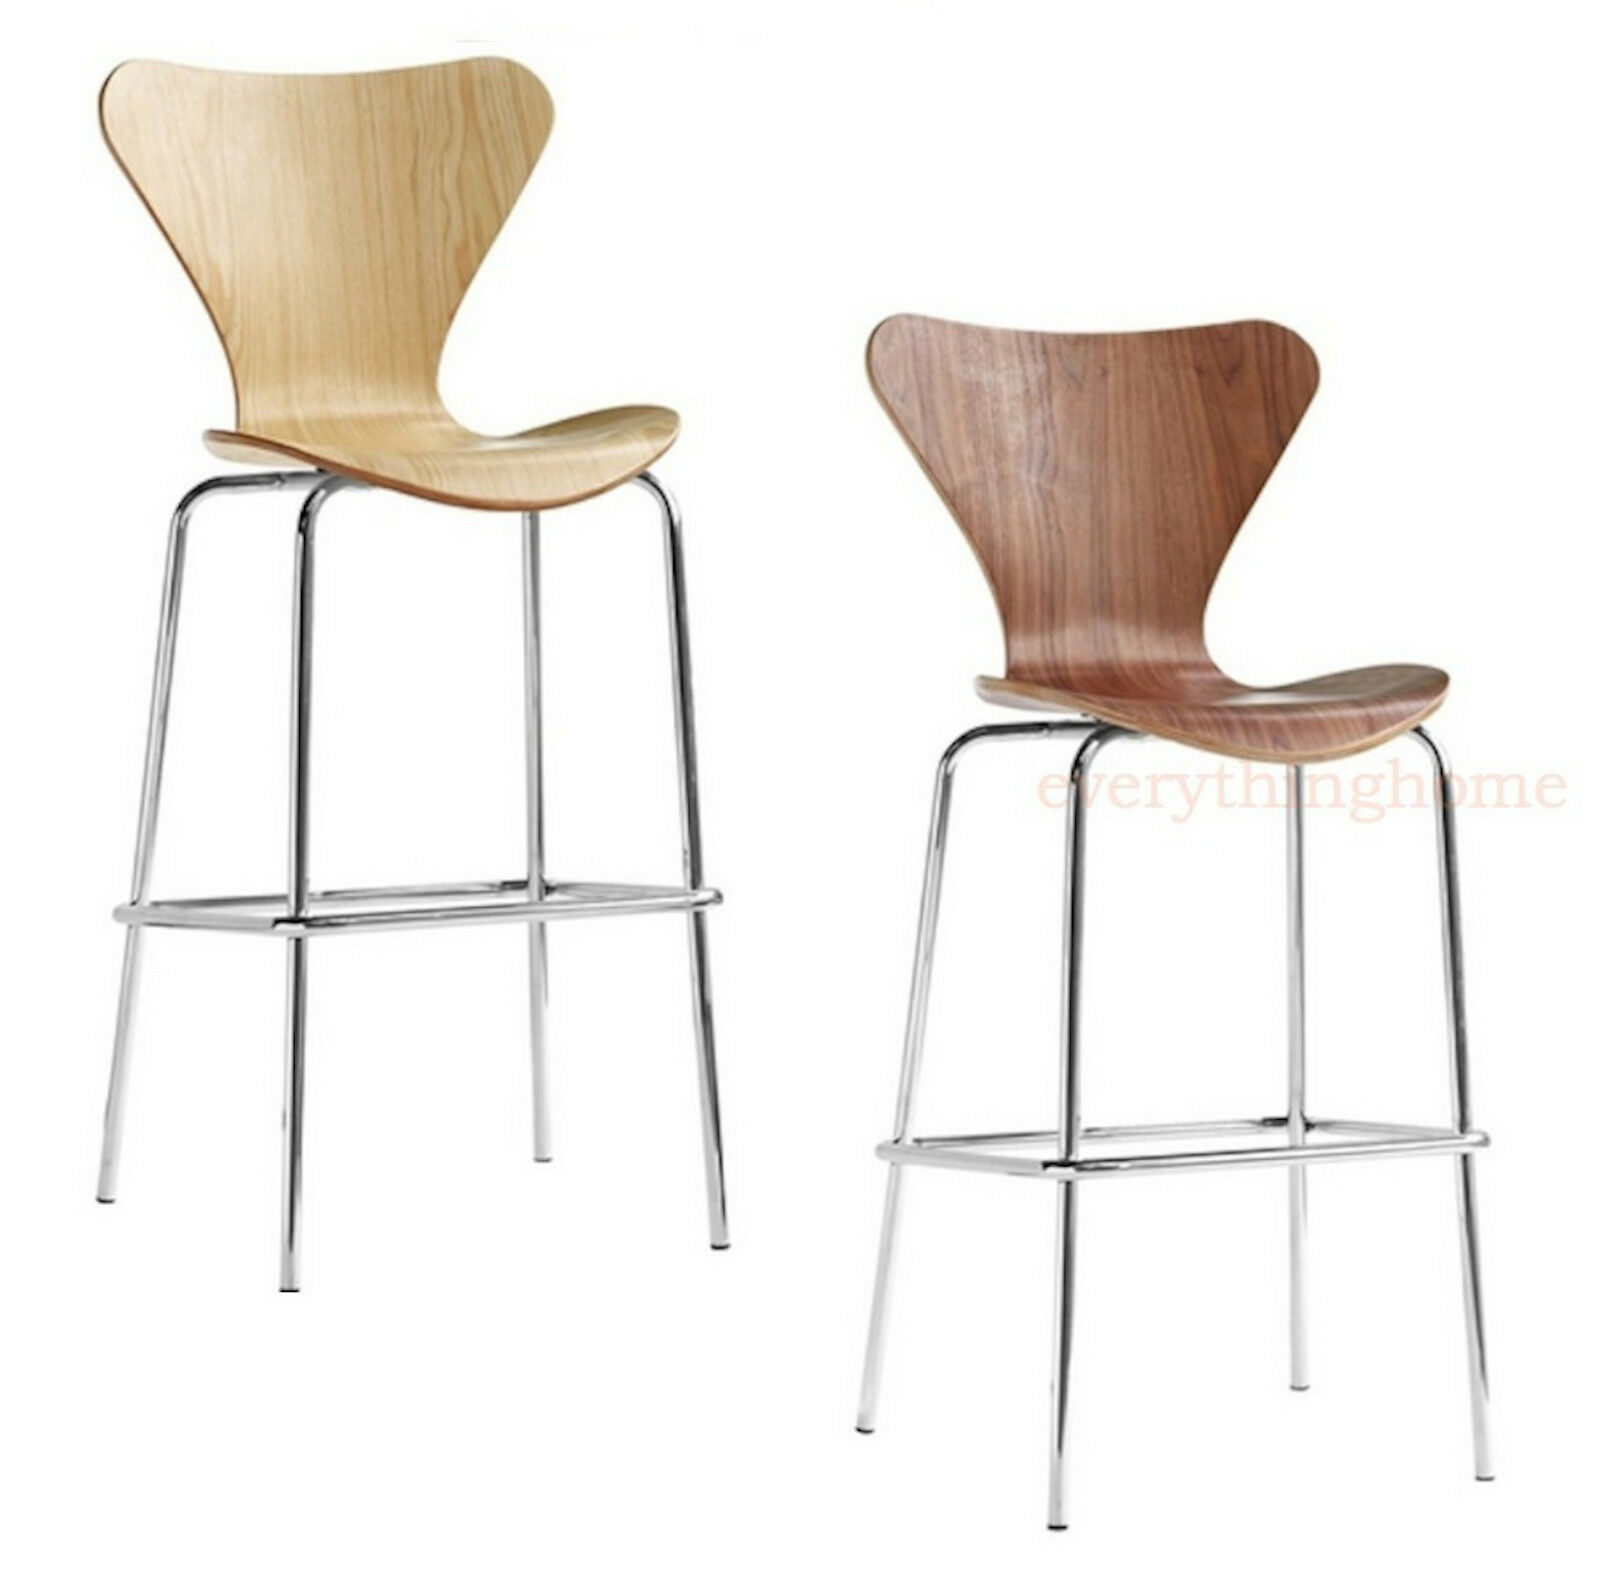 arne jacobsen series 7 style bar stool molded plywood walnut or natural finish